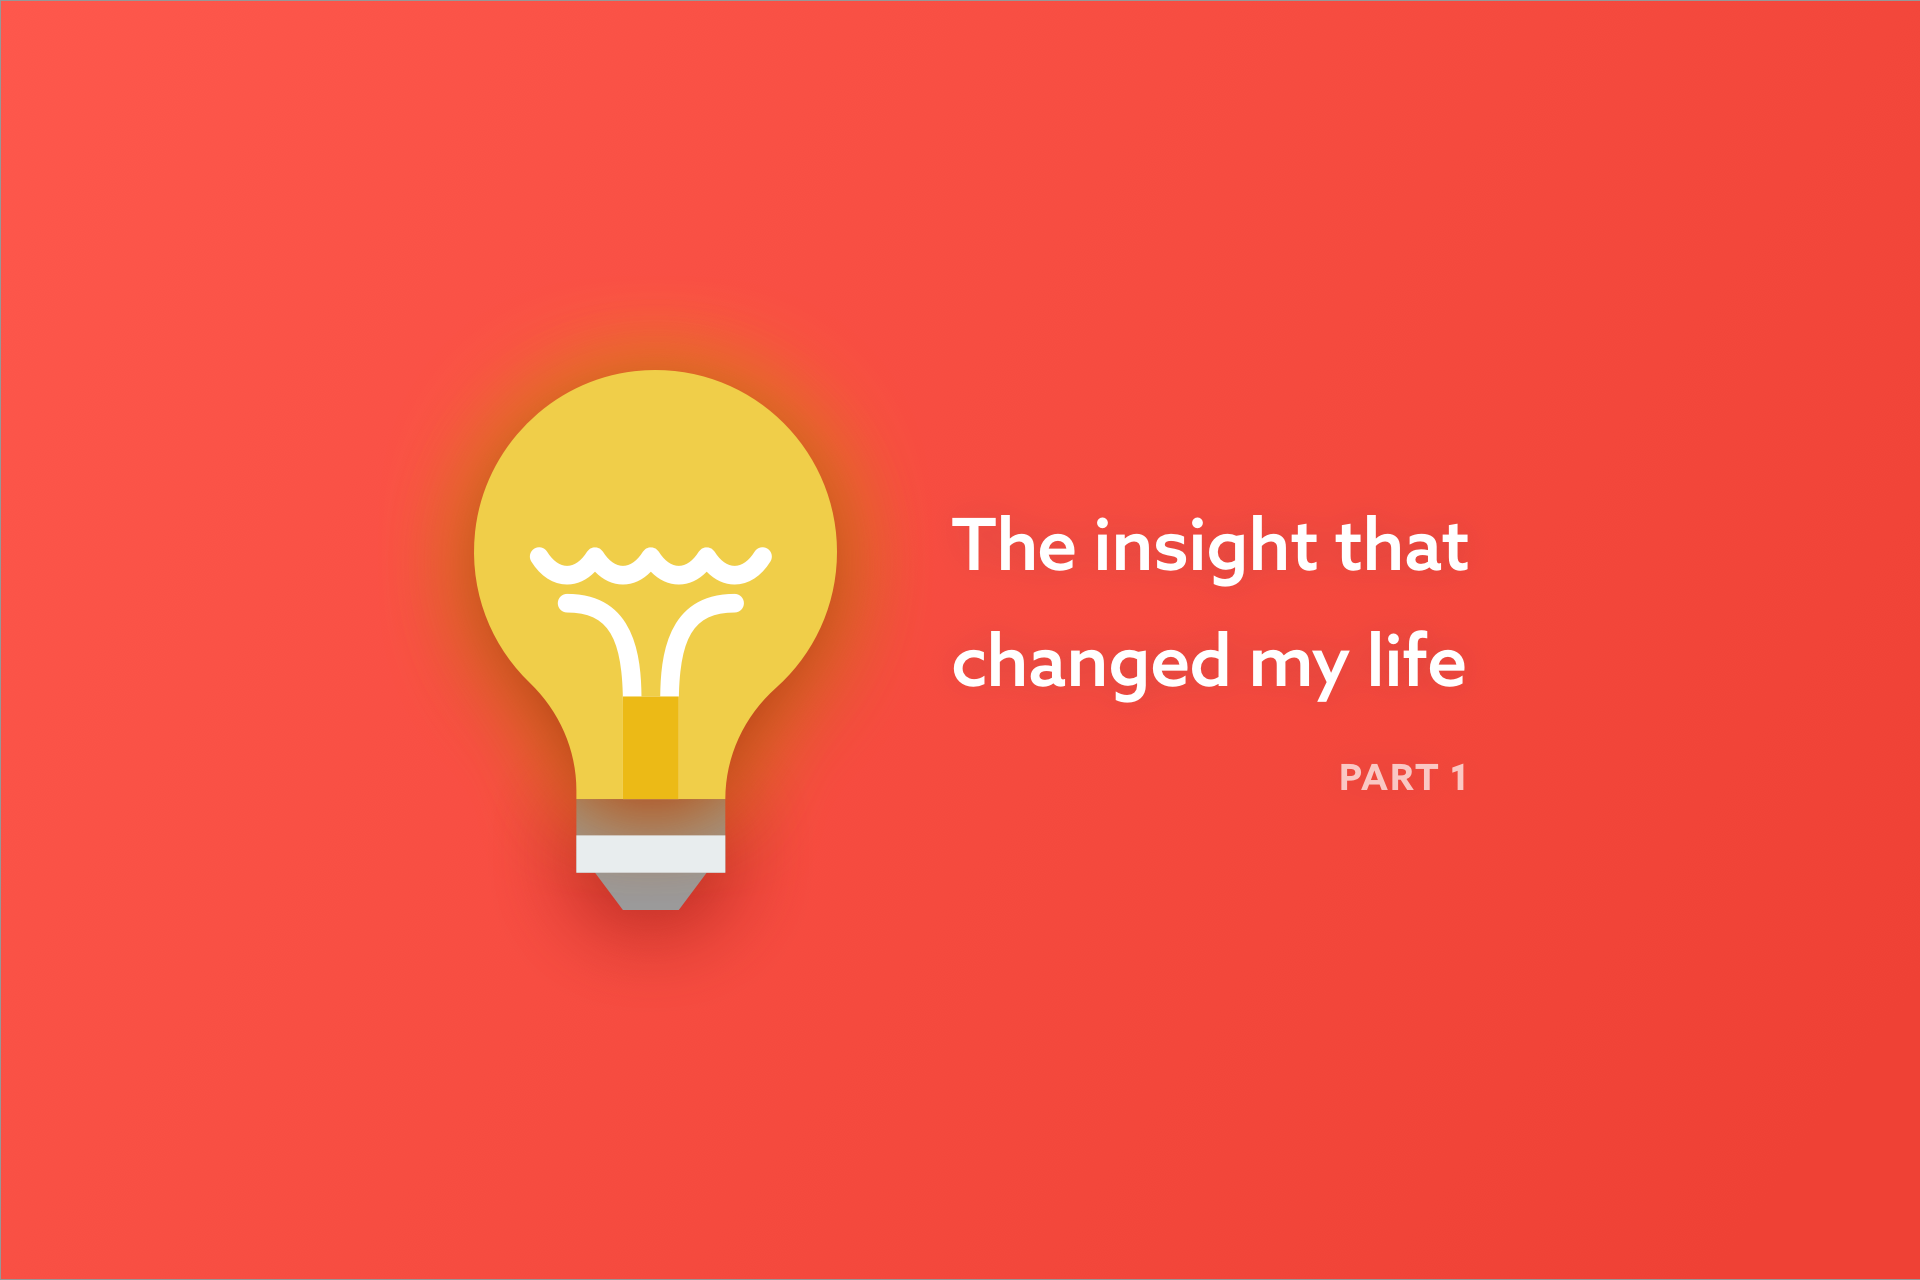 The insight that changed my life (Part One)